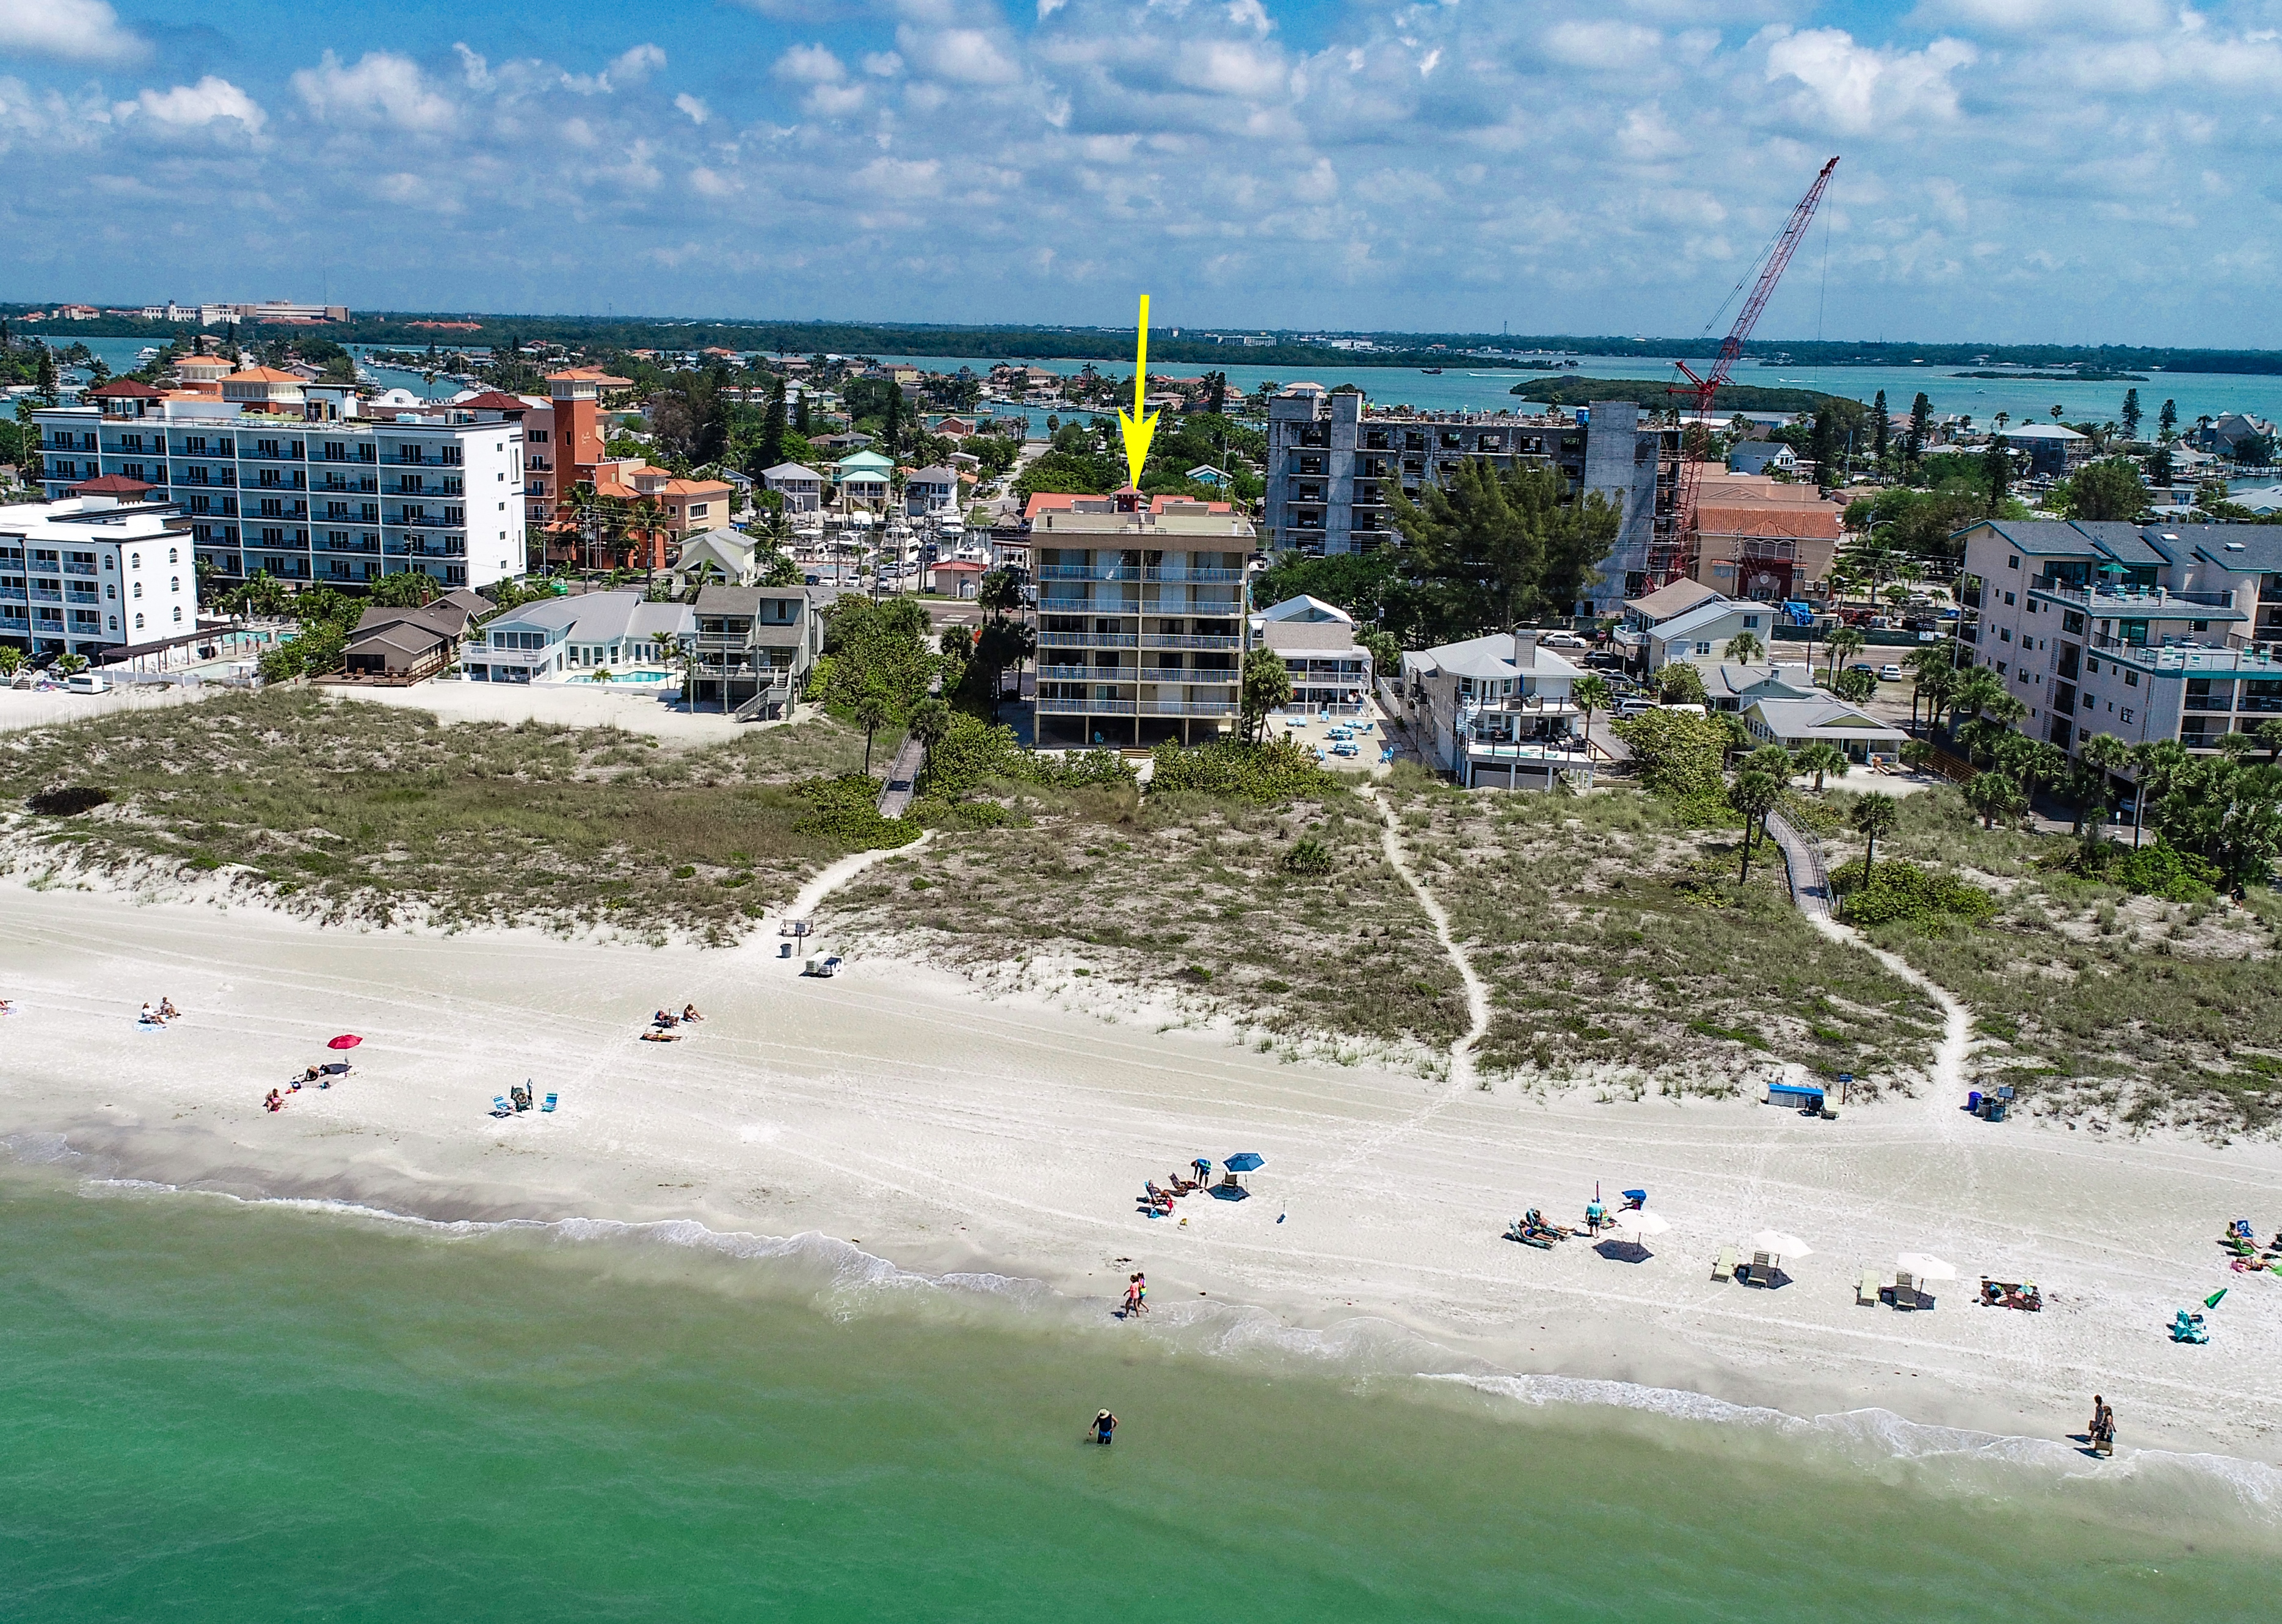 Aerial Image of Building and Beach